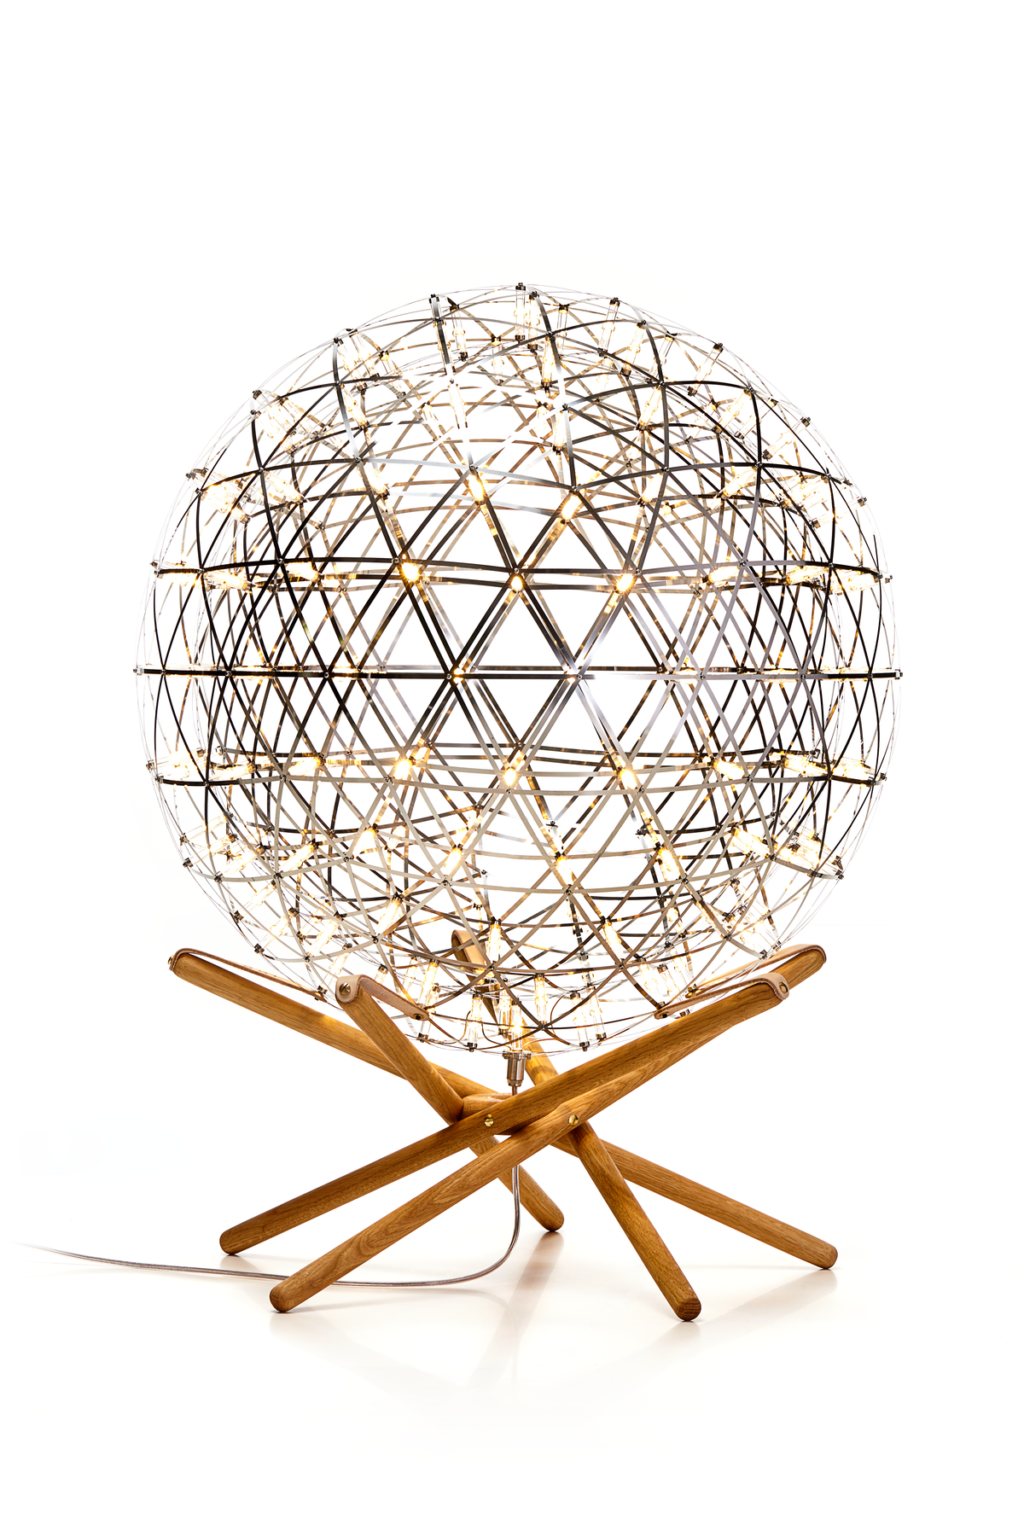 https://desidea.hu/wp-content/uploads/fly-images/160213/moooi-raimond-tensegrity-allolampa6-1024x0.png